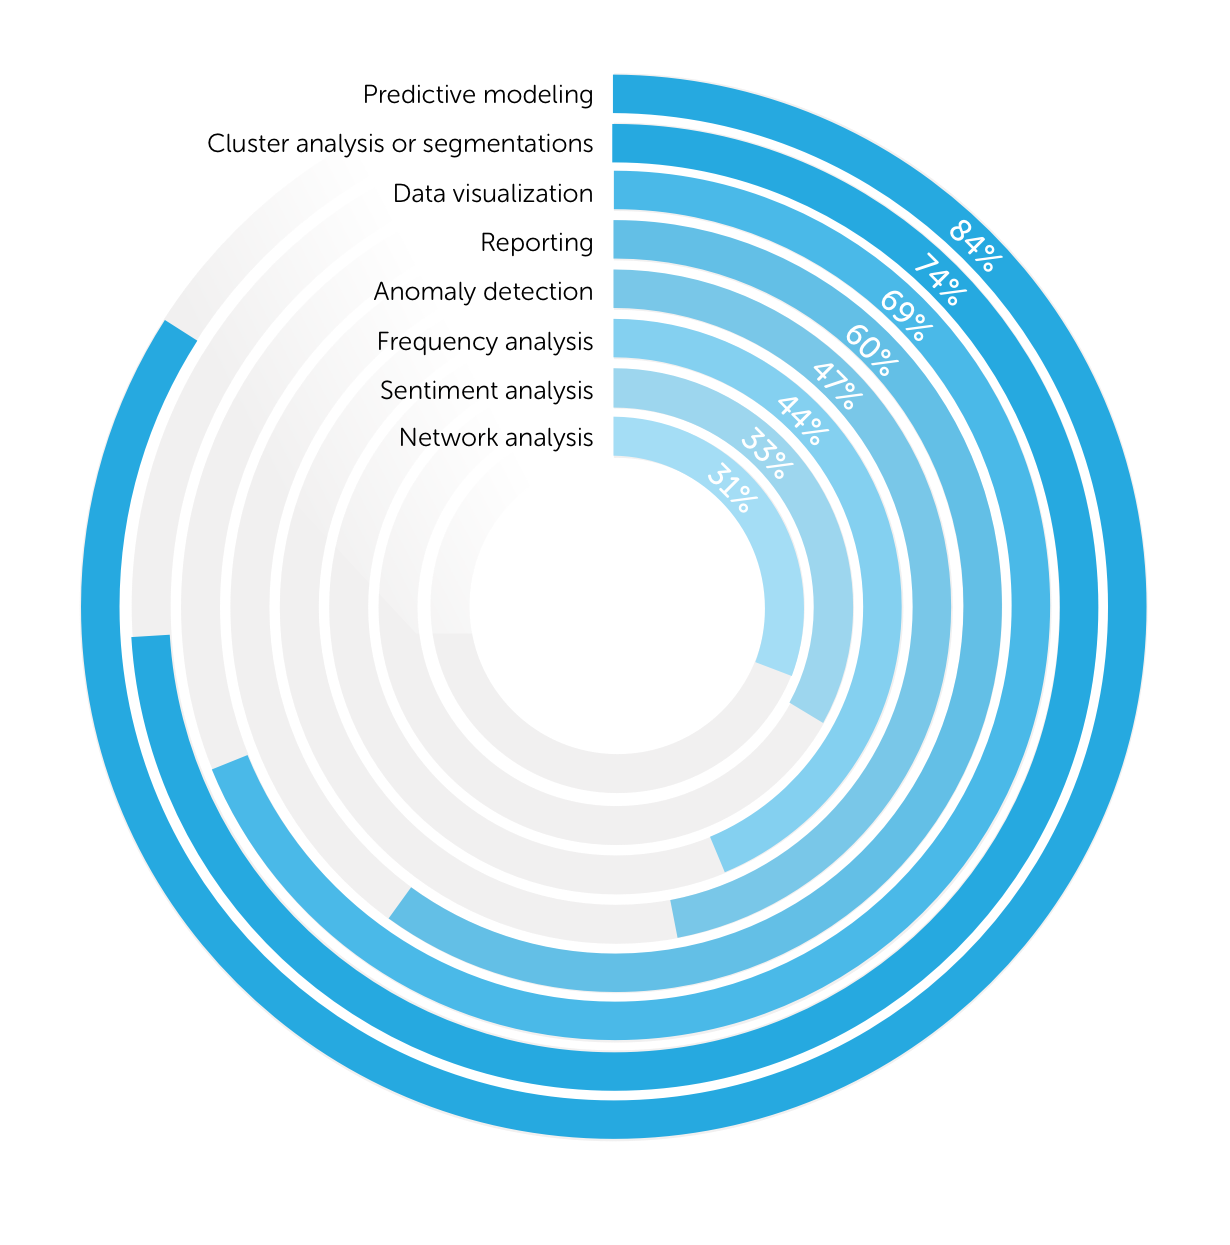 Image showing a blue, multi-shaded, spiraling pie chart with its corresponding labels and values.